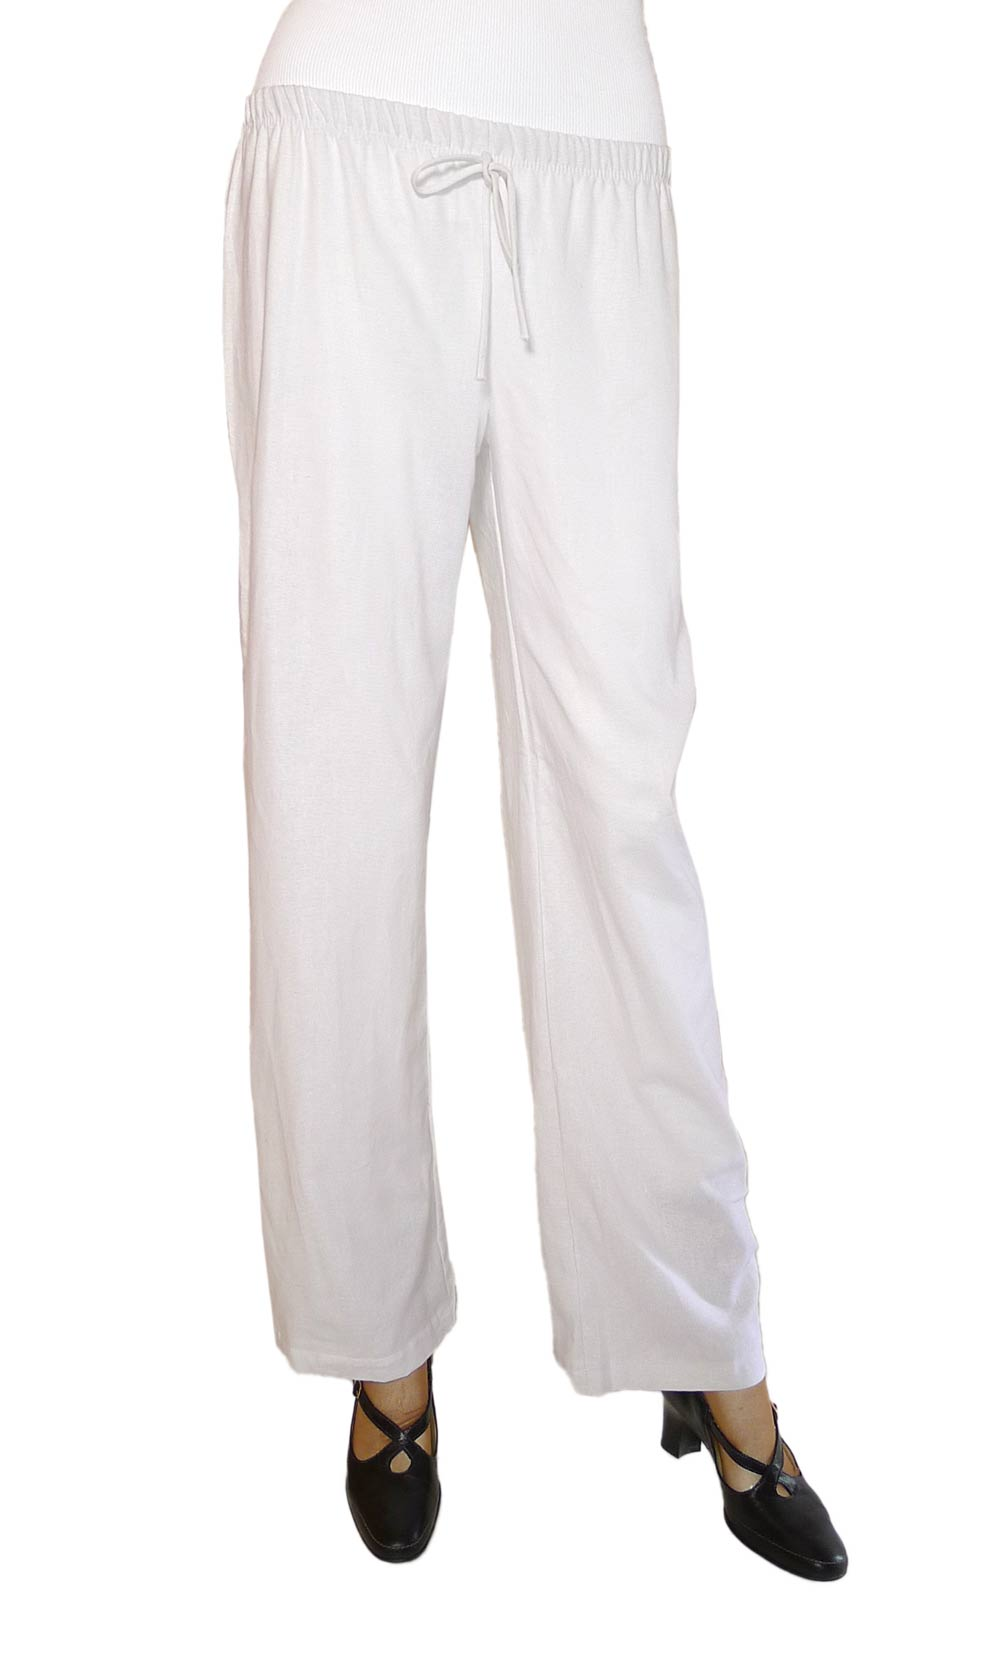 womens white rayon pants photo - 1